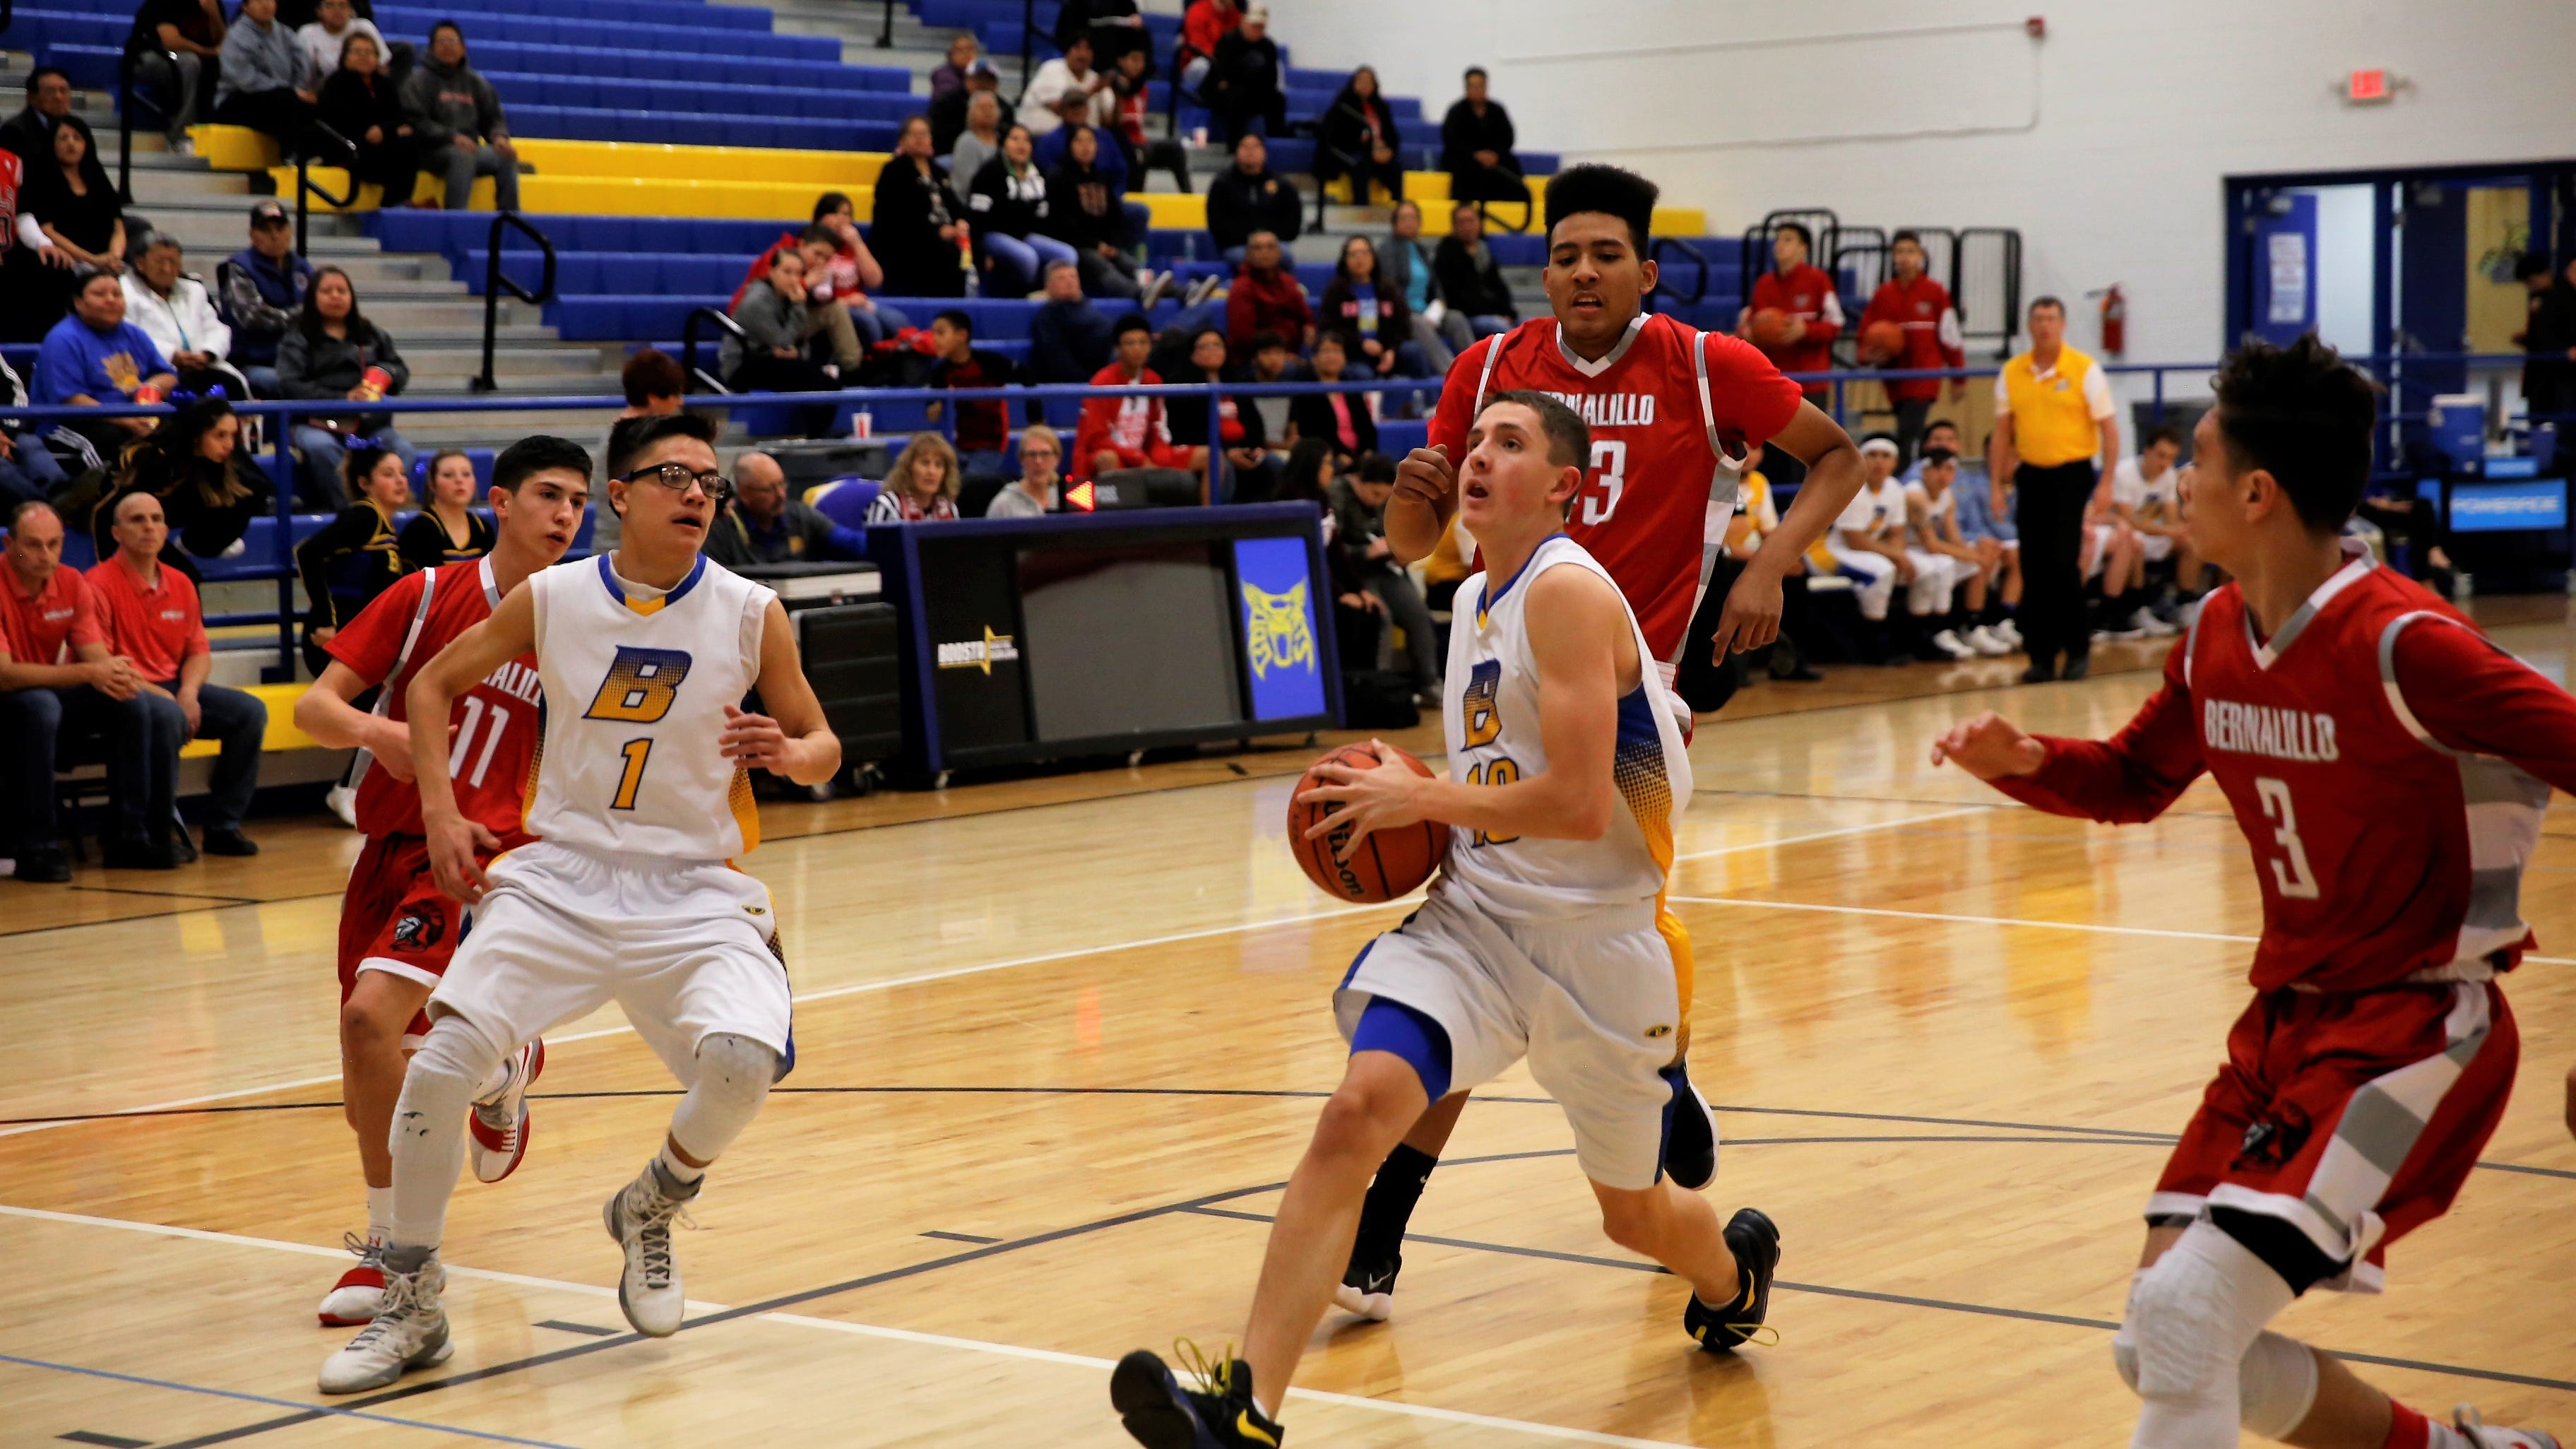 Bloomfield's Josh Boehm (10) drives to the basket during a non-district game against Bernalillo on Tuesday, Jan. 2, 2018 at Bobcat Gym. Bloomfield opens the new season Nov. 29 at the Jerry Richardson Memorial tournament in Shiprock.